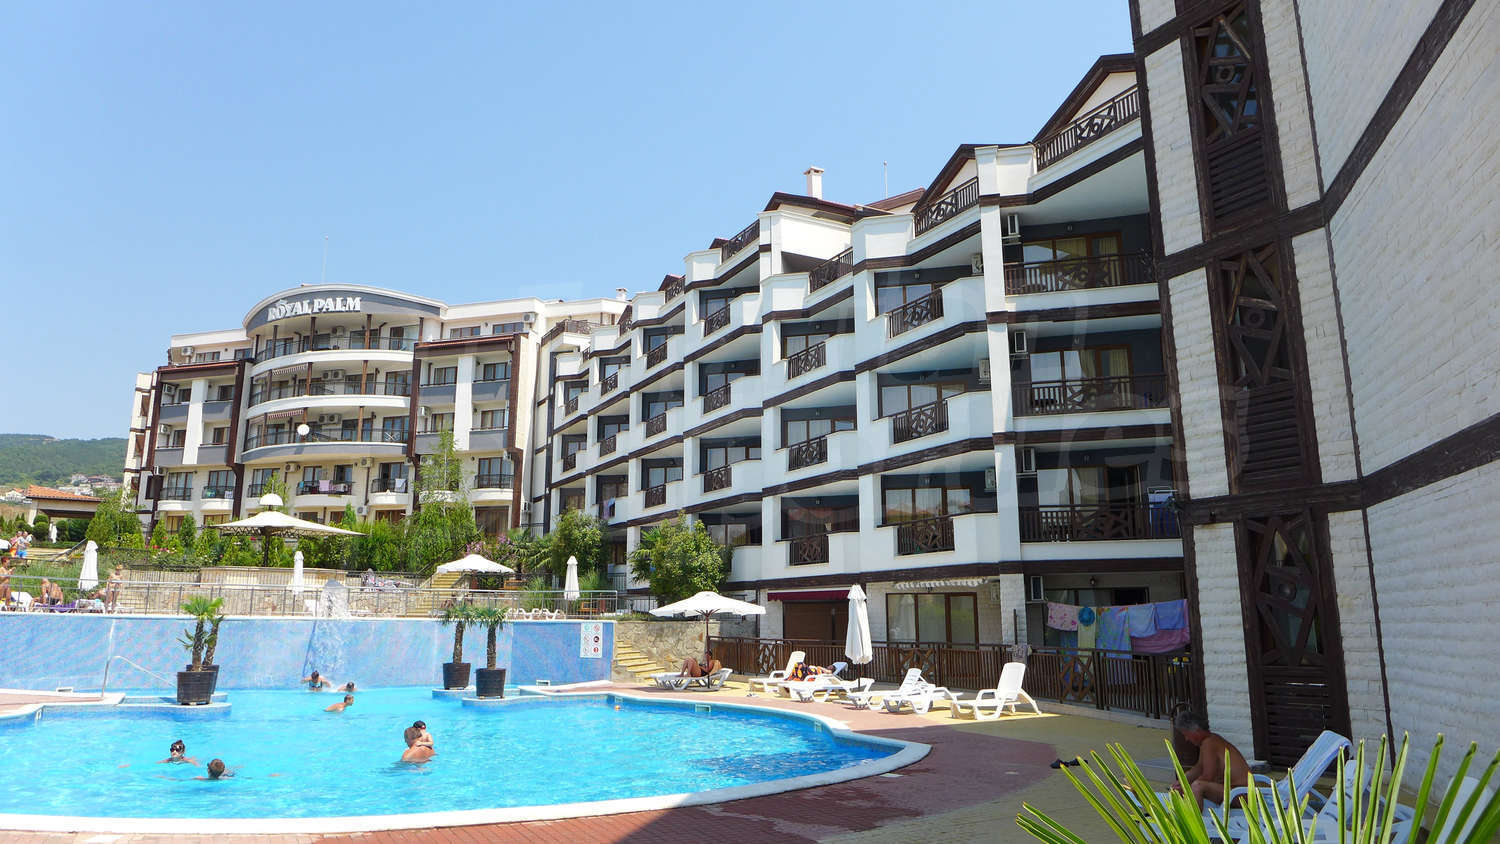 1 Bedroom Apartment For Sale In Royal Palm In Sveti Vlas 100 M To The Sea Bulgaria 1 Bedroom